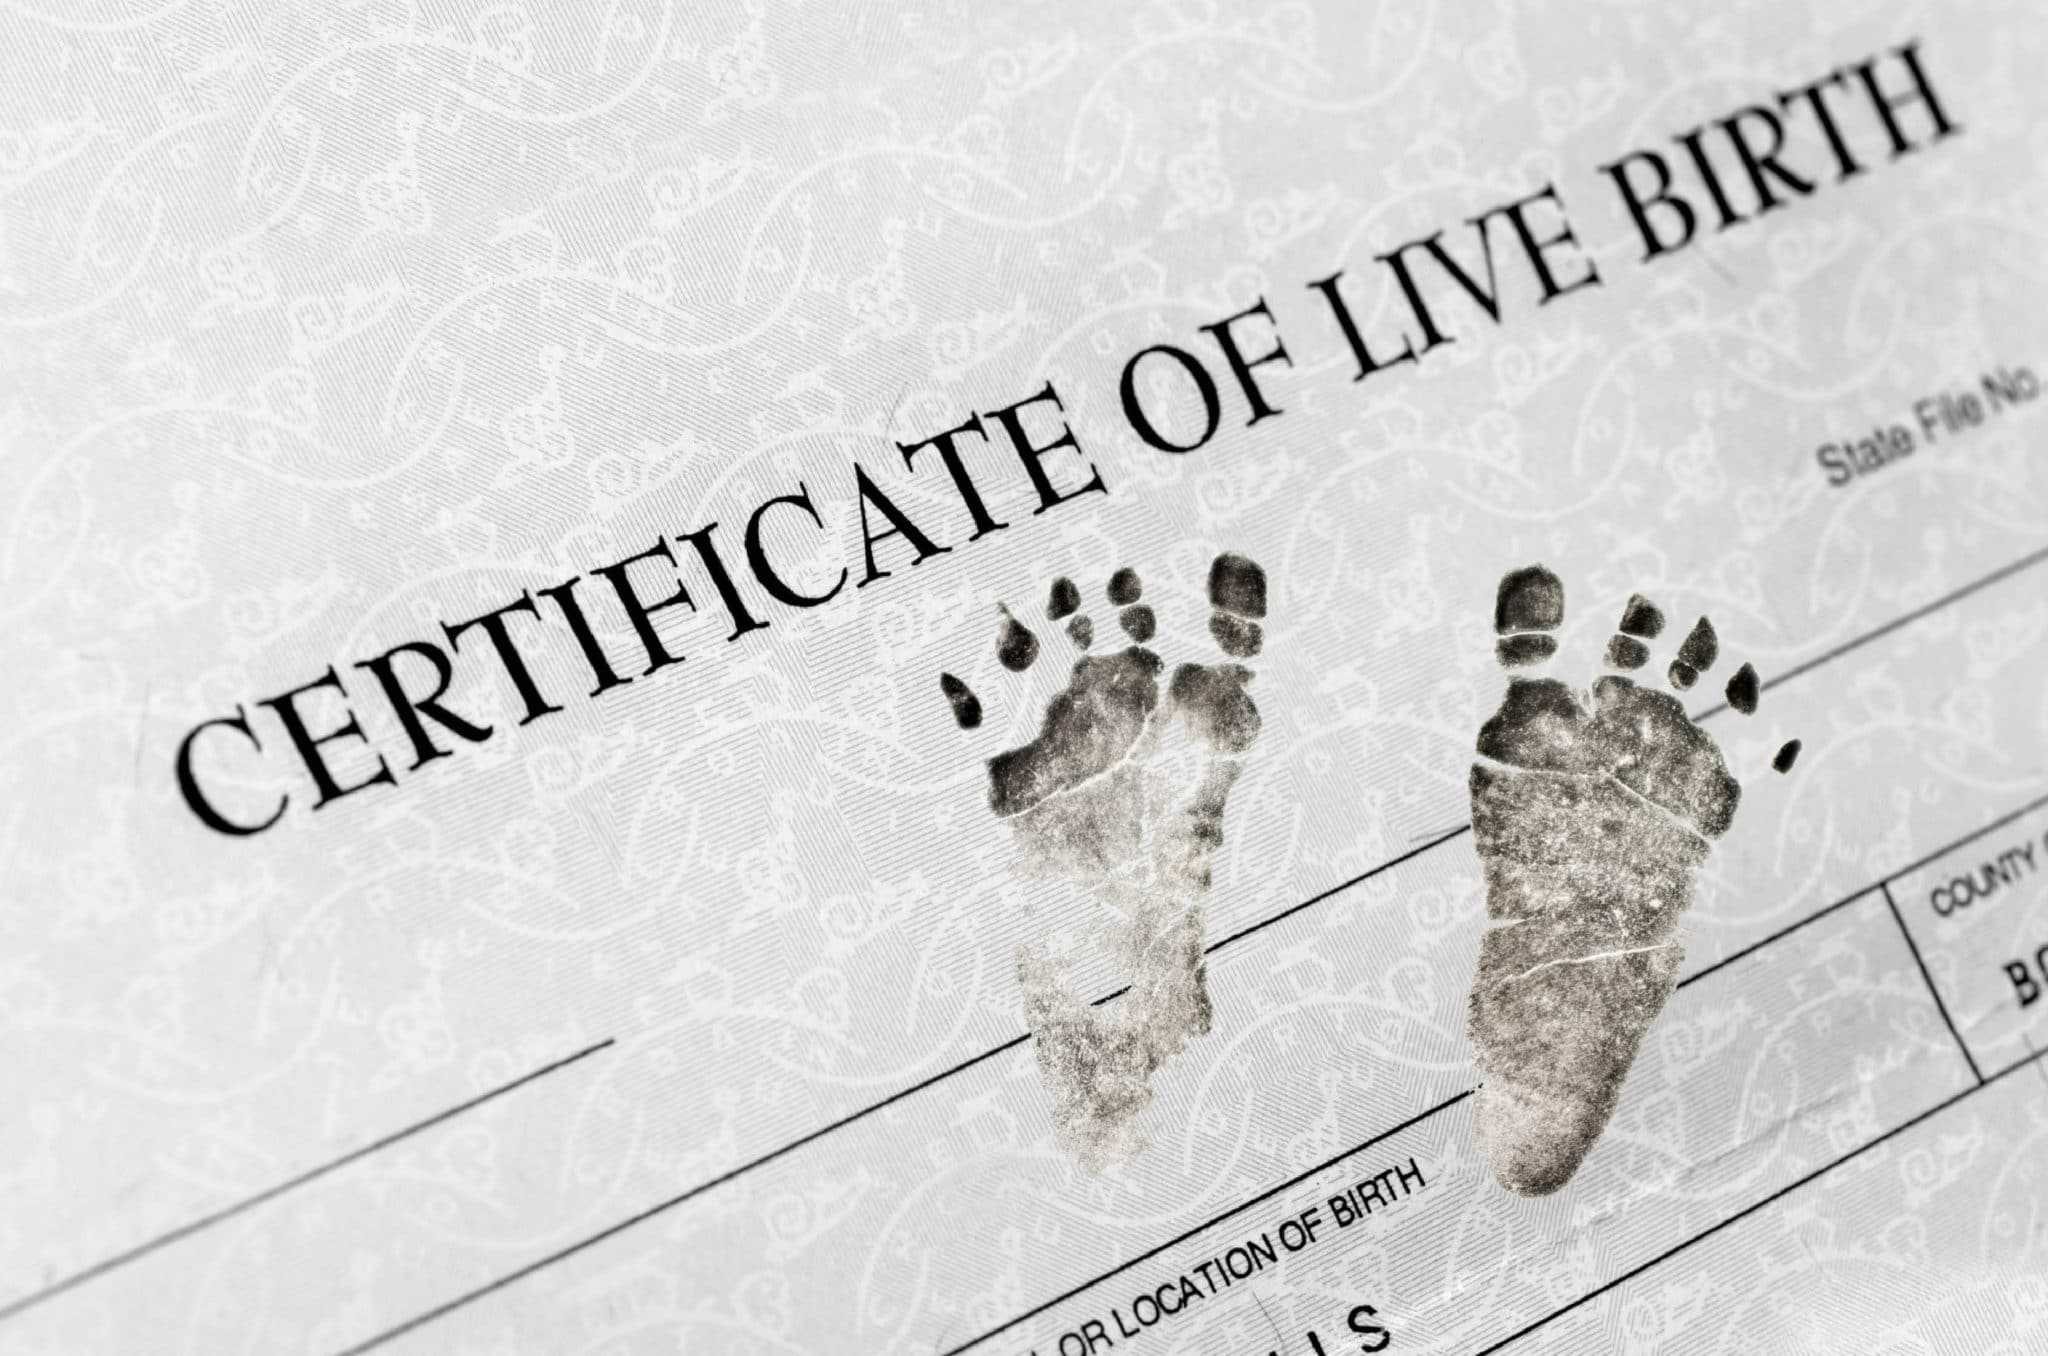 Rich Vaughn Blog: Texas Settlement Affirms Birth Certificates Essential Protection of Children's Rights